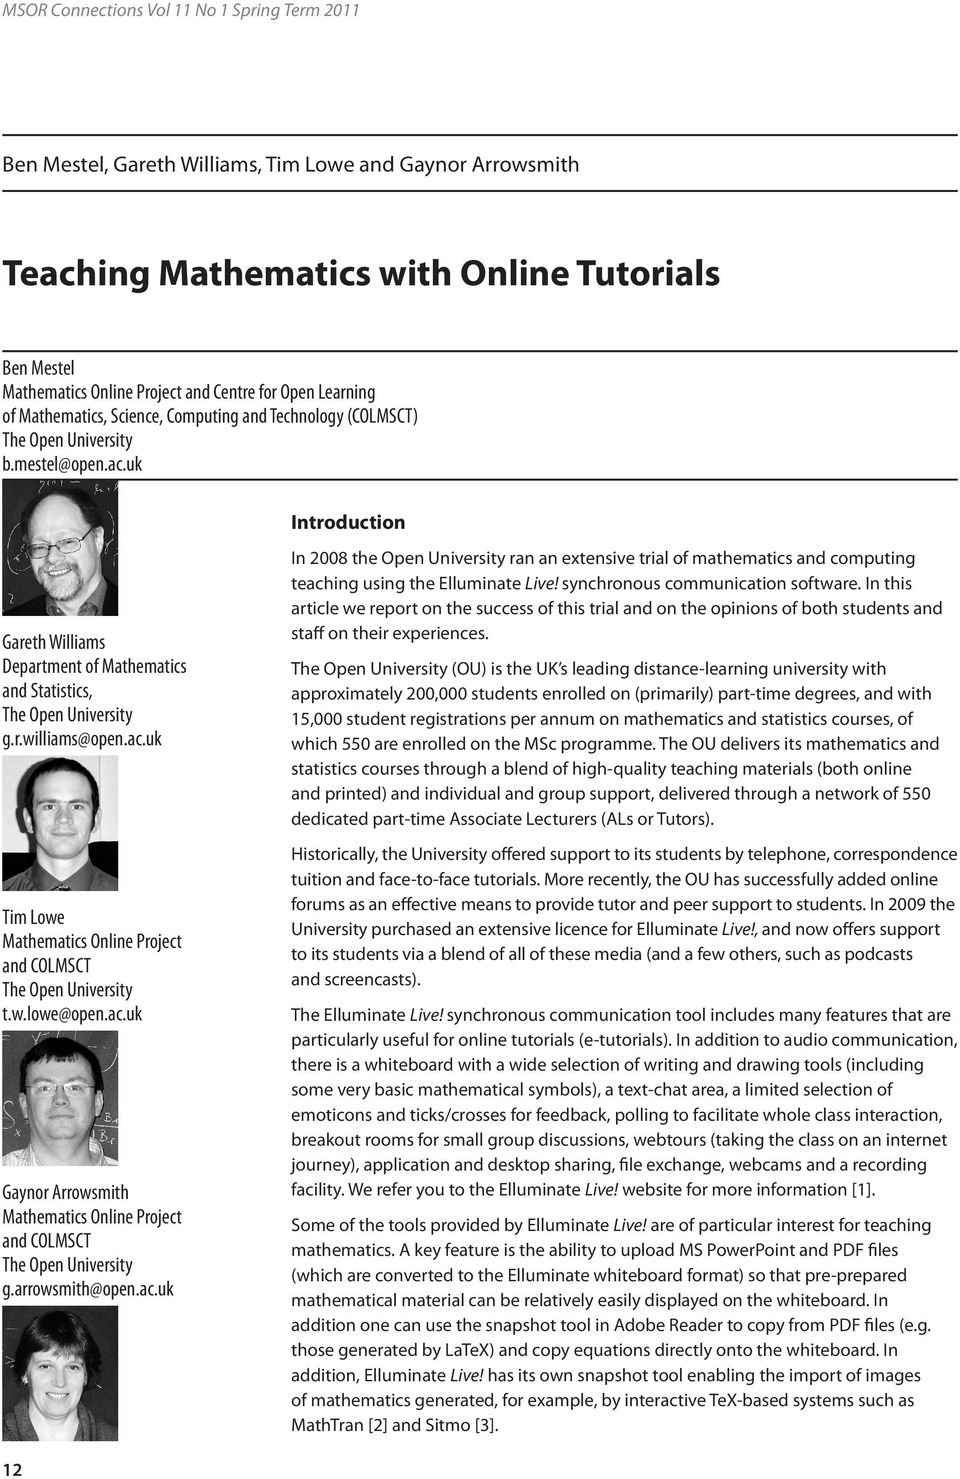 w.lowe@open.ac.uk Gaynor Arrowsmith Mathematics Online Project and COLMSCT g.arrowsmith@open.ac.uk In 2008 the Open University ran an extensive trial of mathematics and computing teaching using the Elluminate Live!